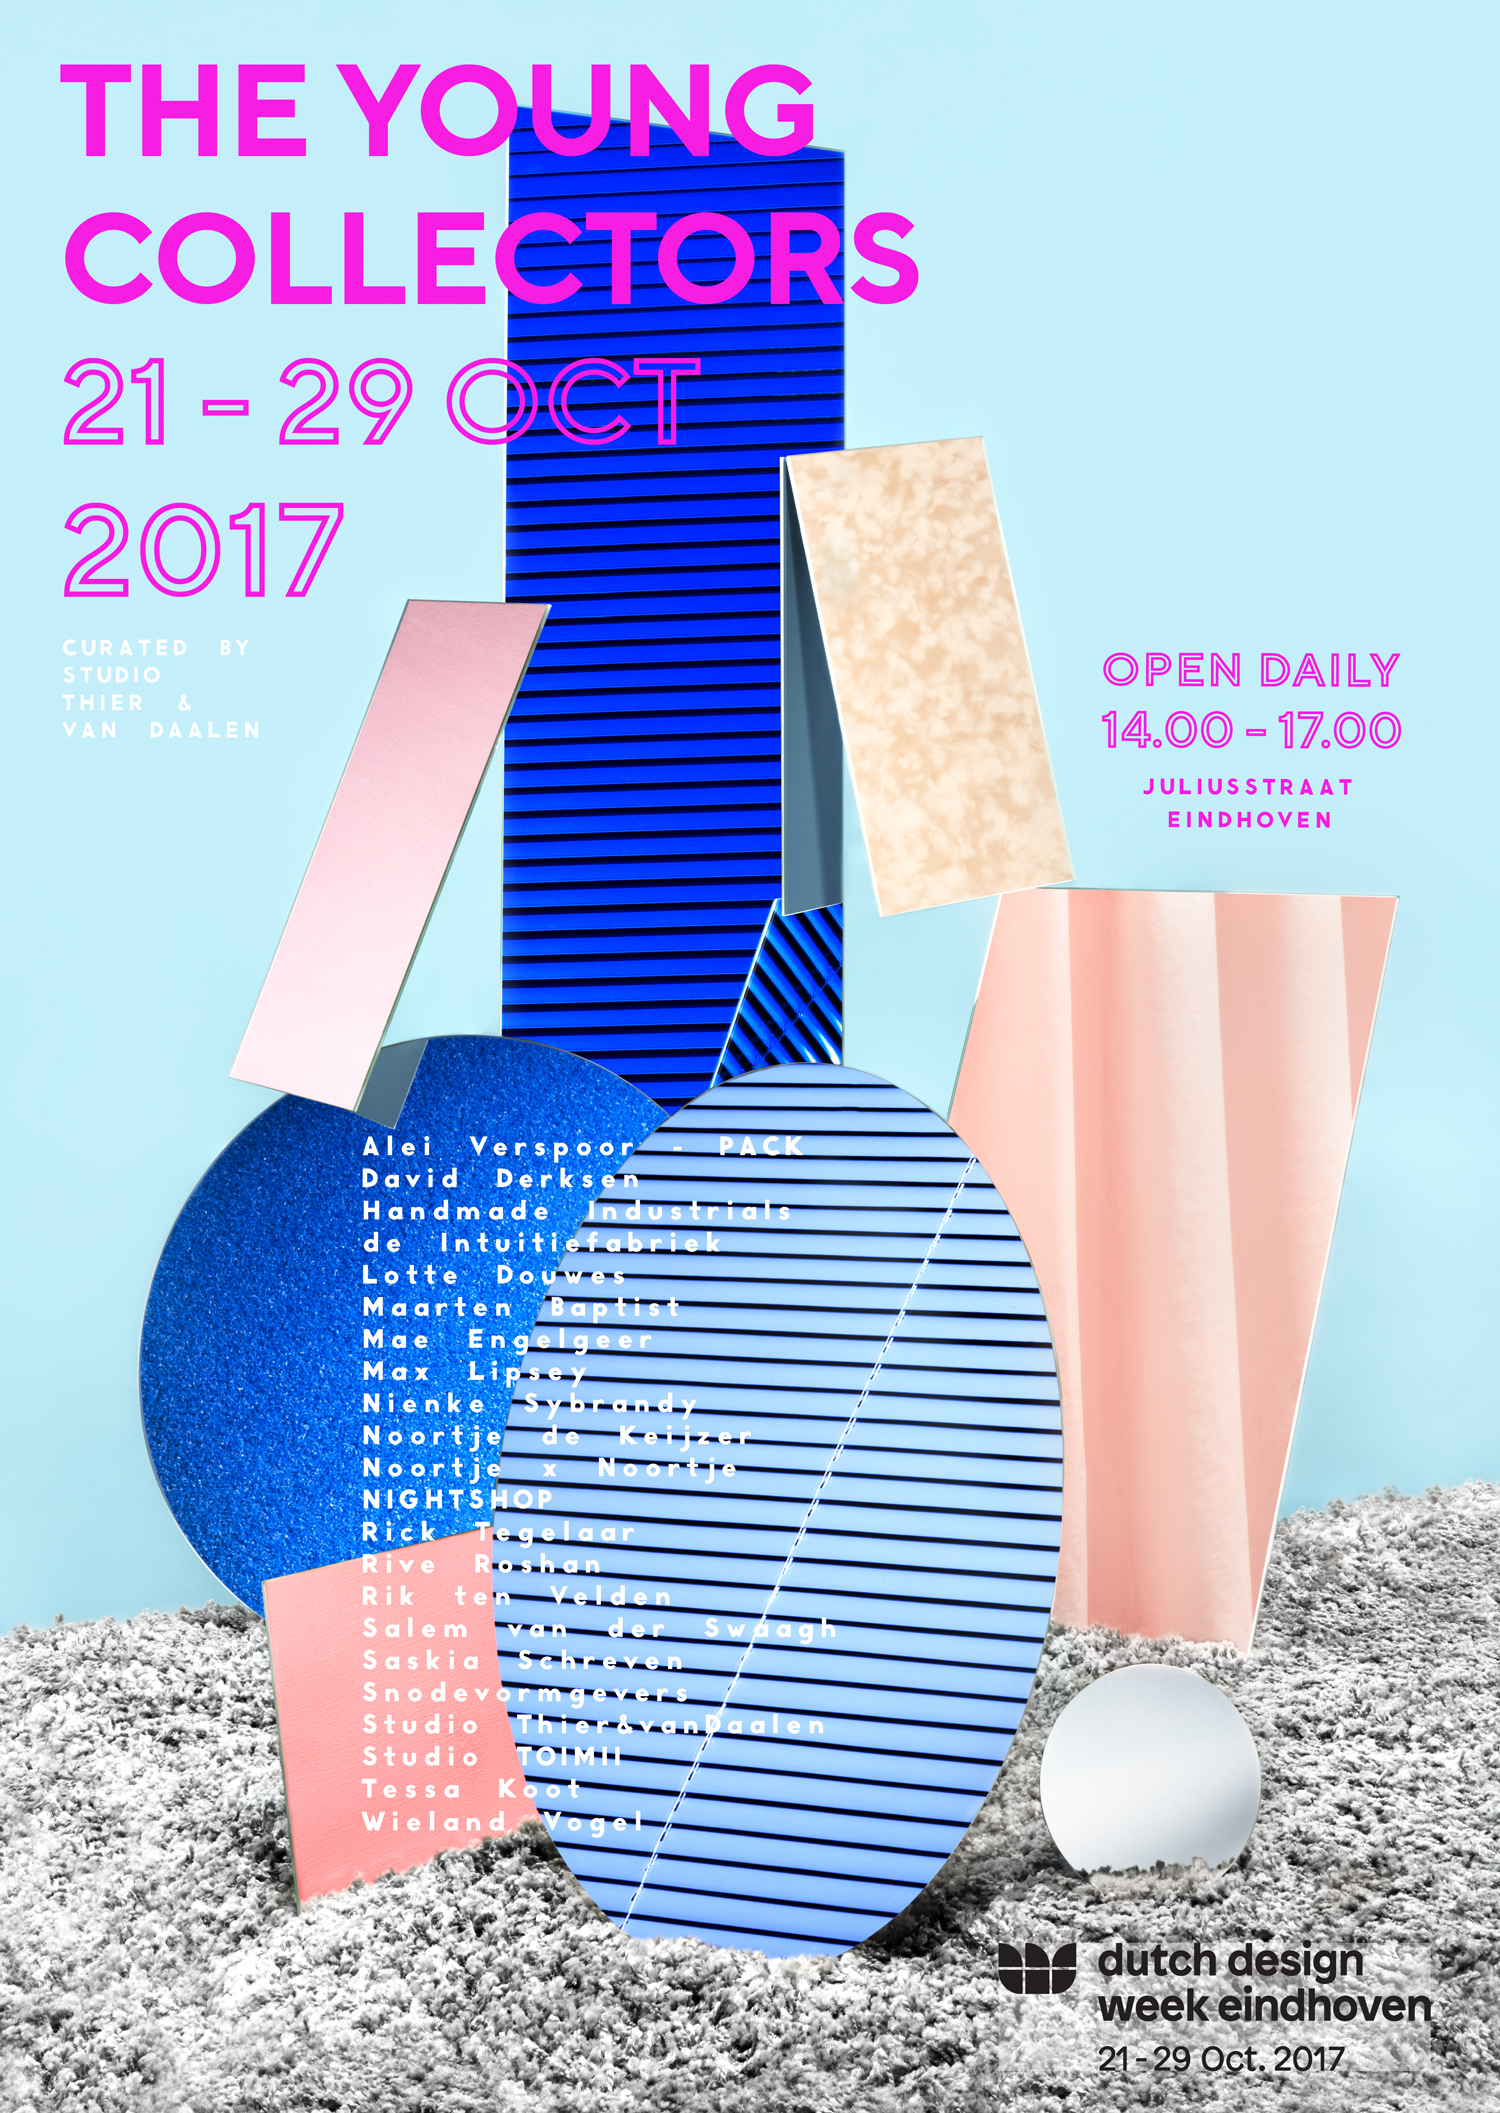 Poster_THEYOUNGCOLLECTORS_DDW17_Studio_Thier&vanDaalen_Low